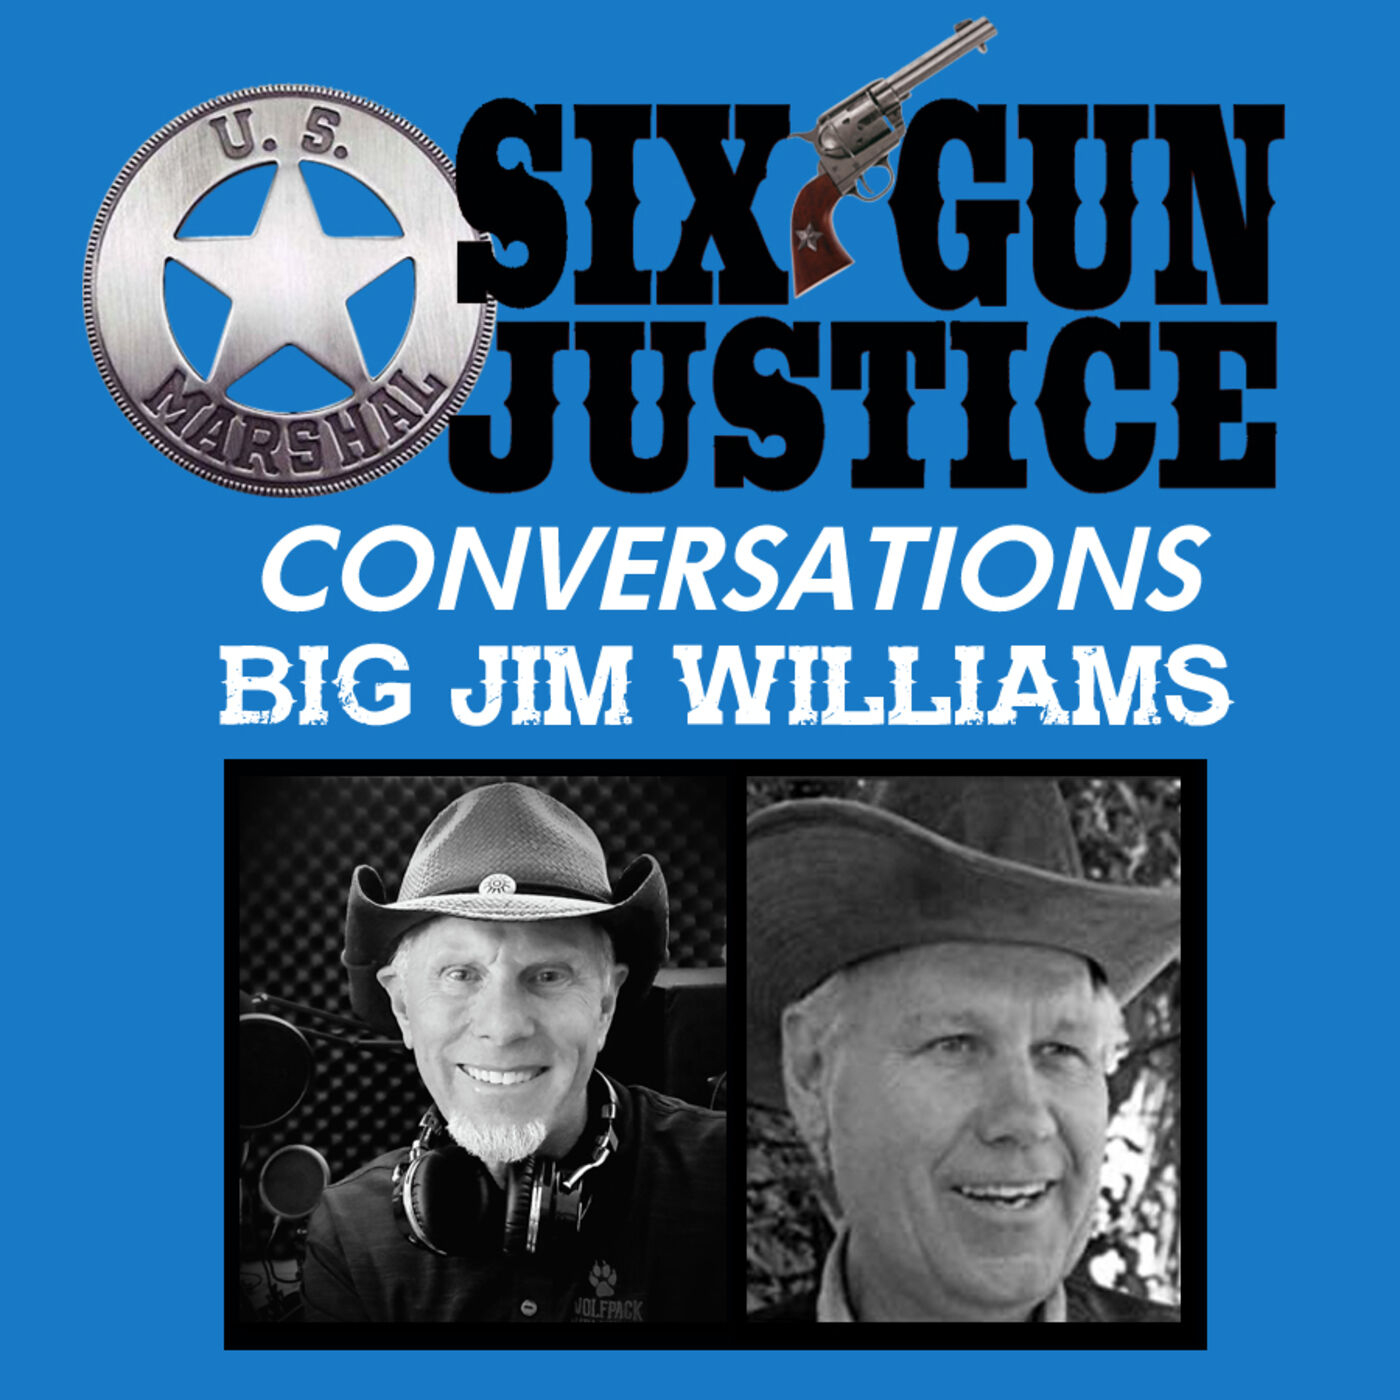 SIX-GUN JUSTICE CONVERSATIONS—BIG JIM WILLIAMS